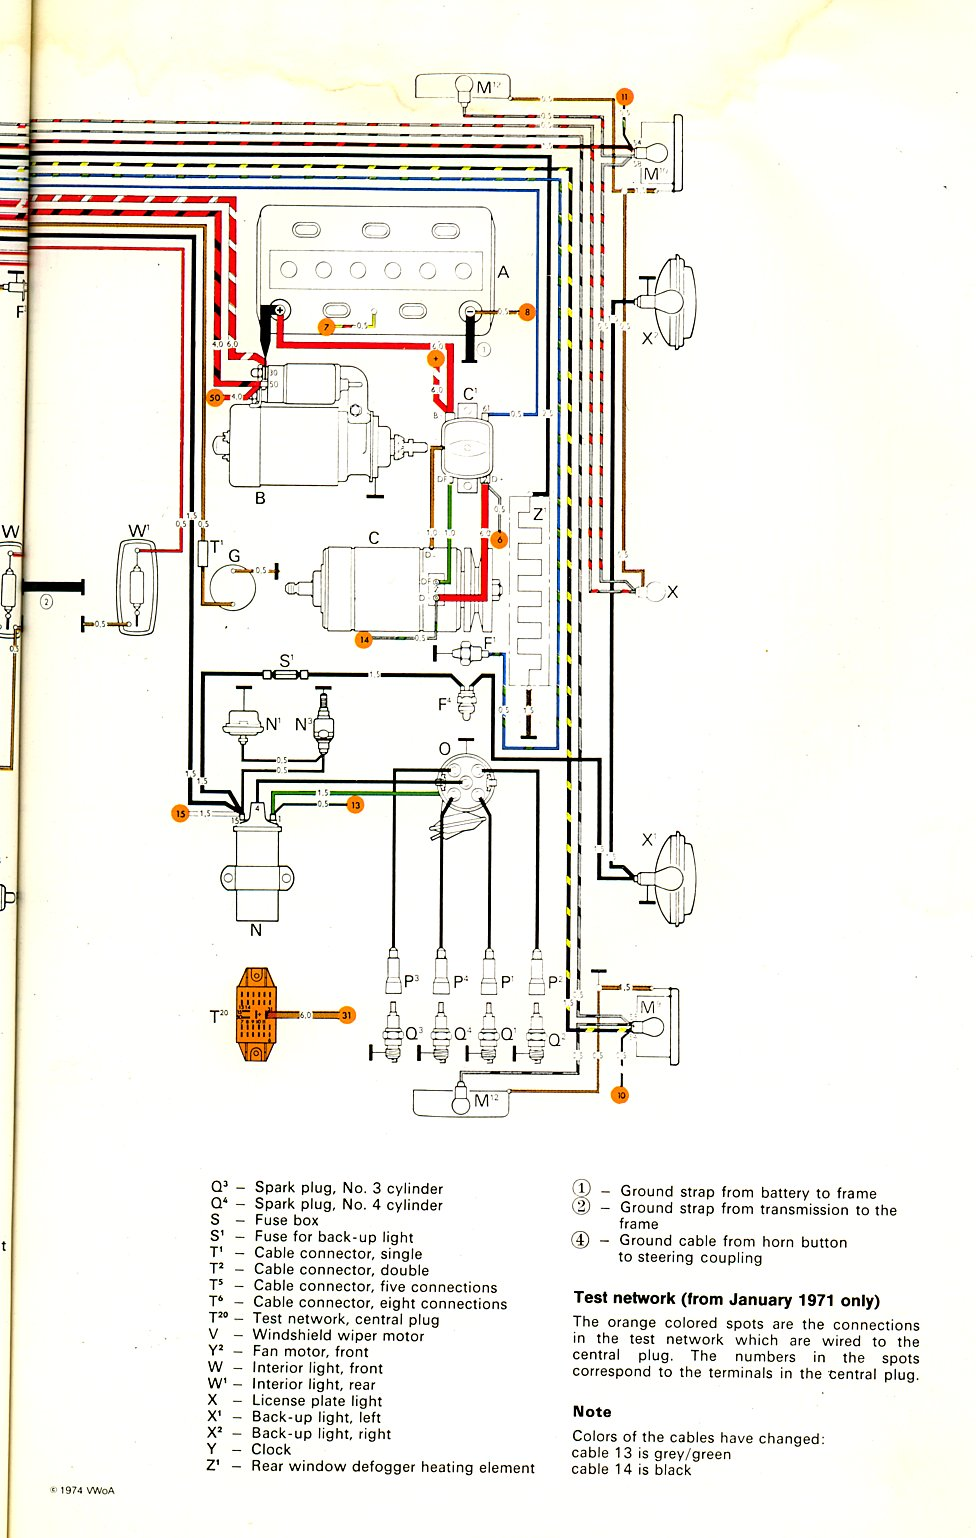 baybus_71b thesamba com type 2 wiring diagrams 1971 vw bus wiring diagram at nearapp.co